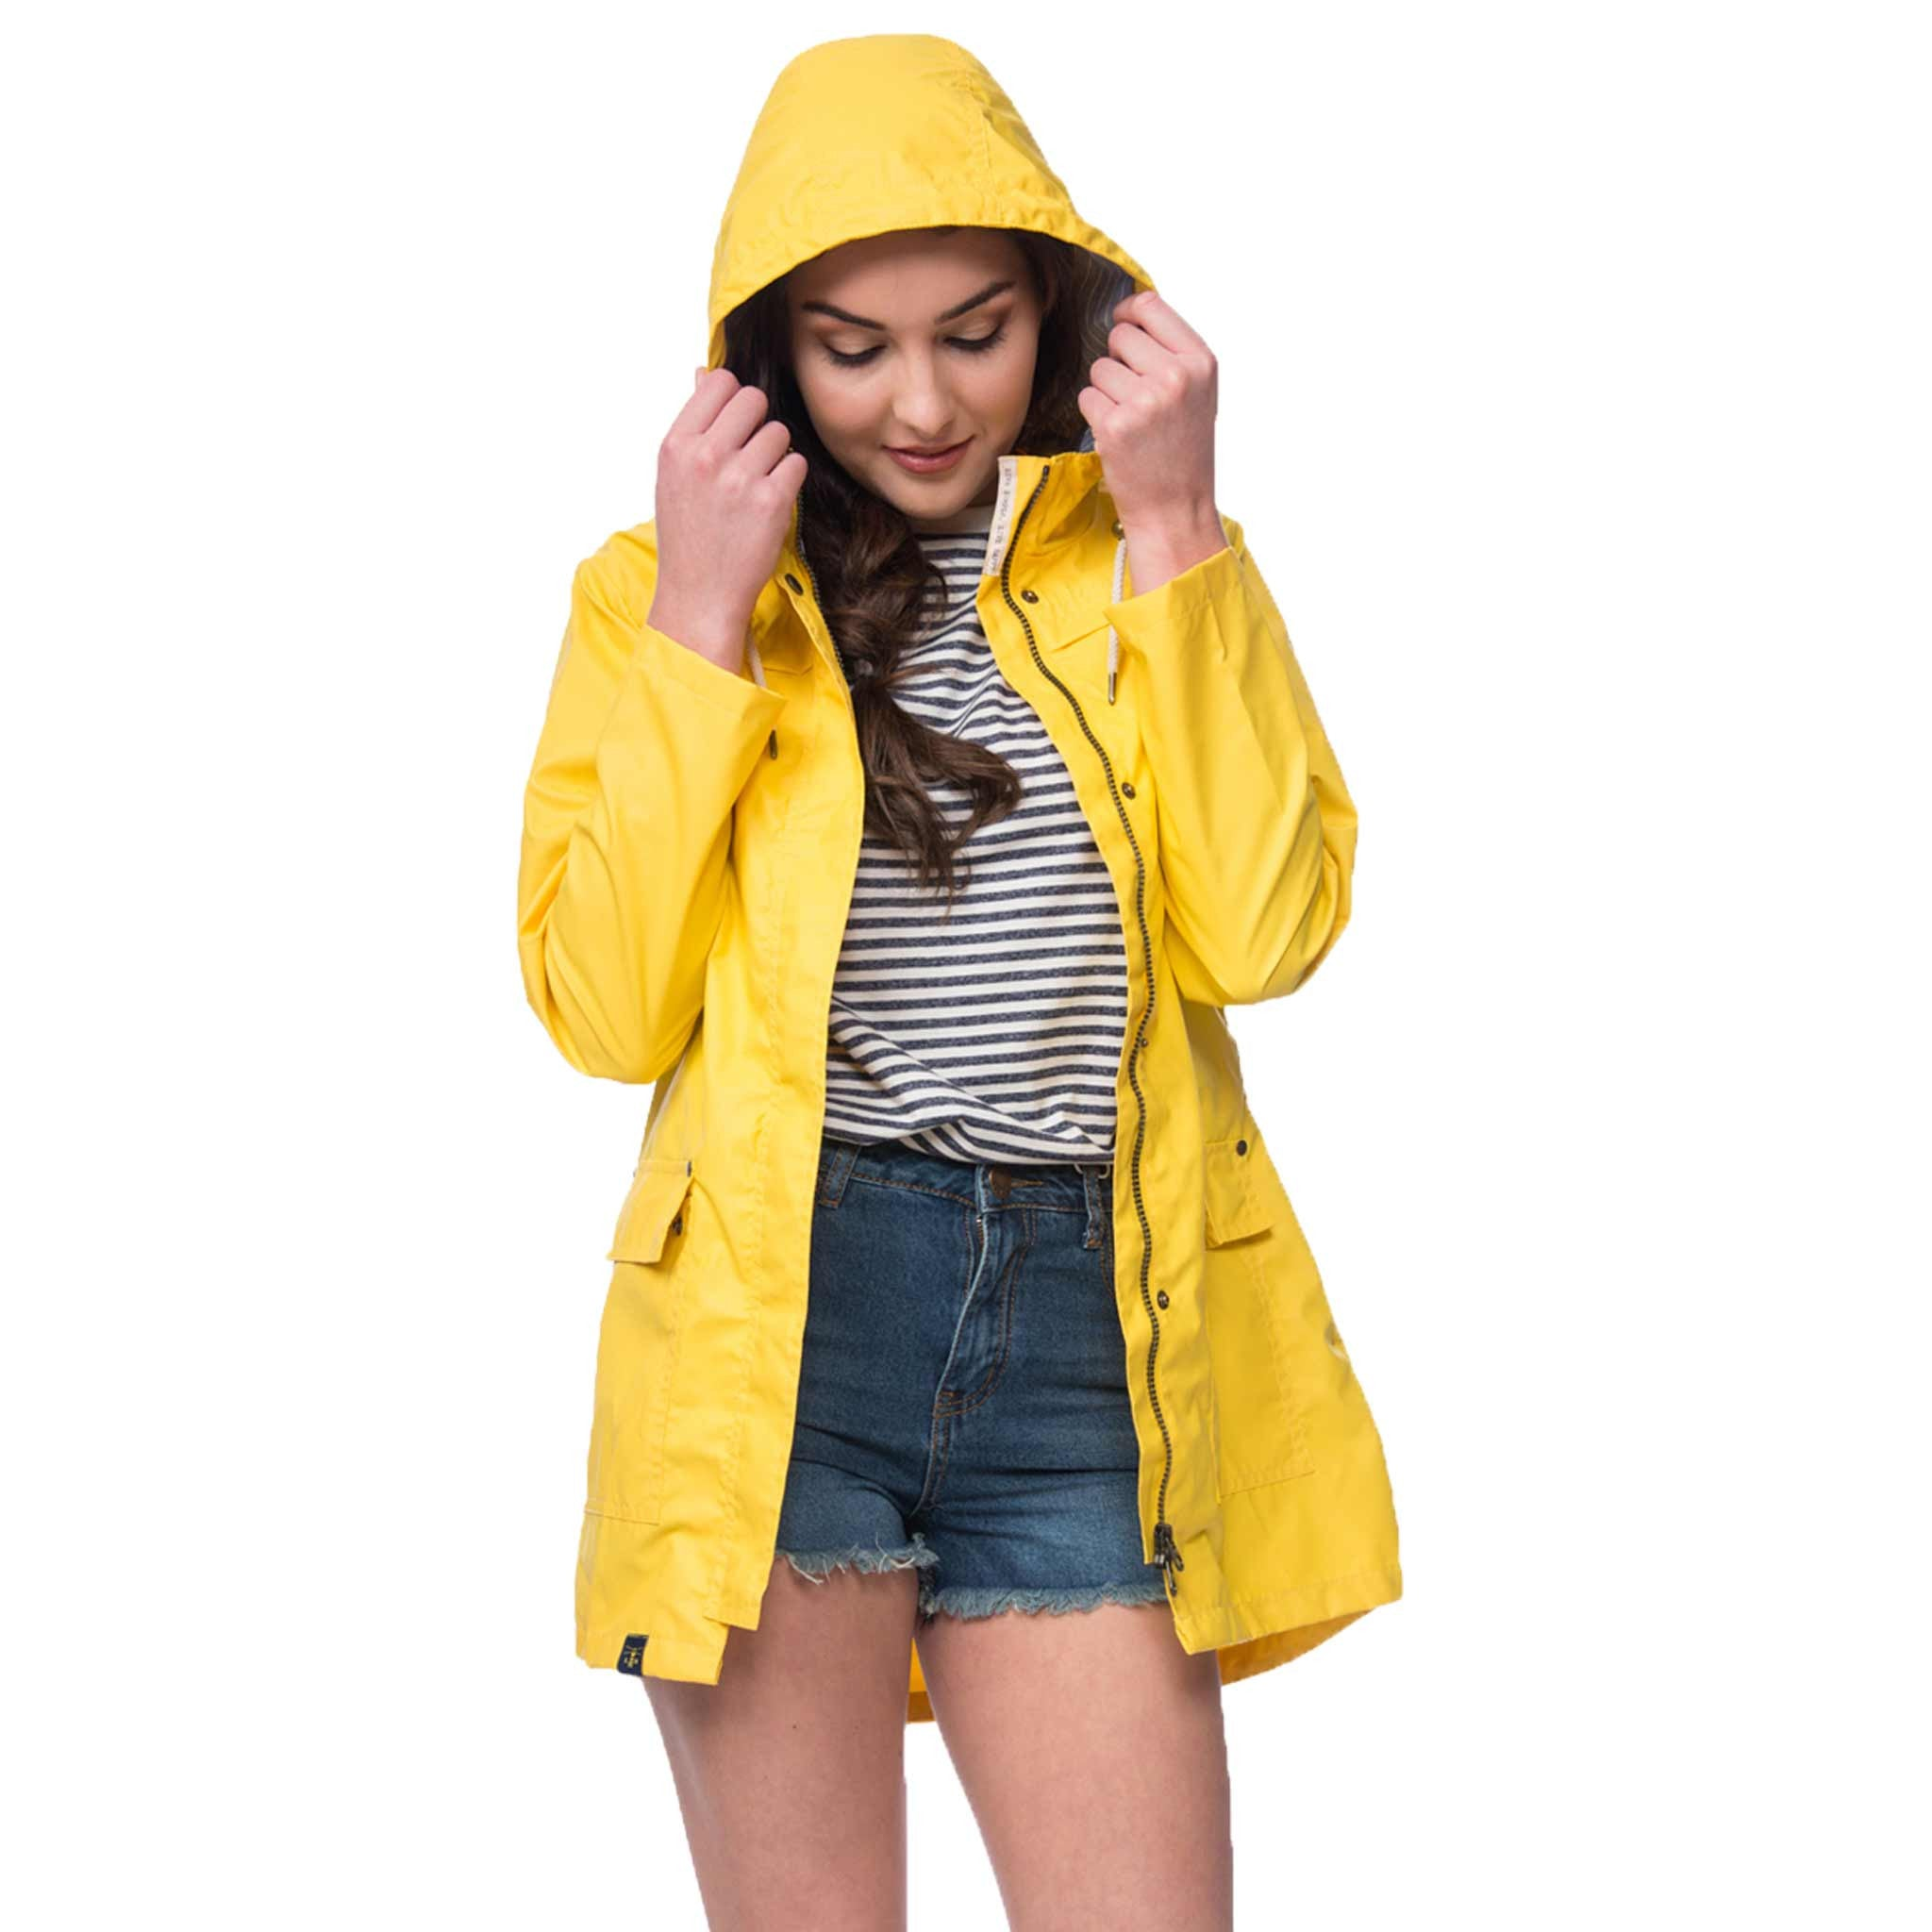 Lighthouse Bowline Womens Rubber Raincoat in Yellow